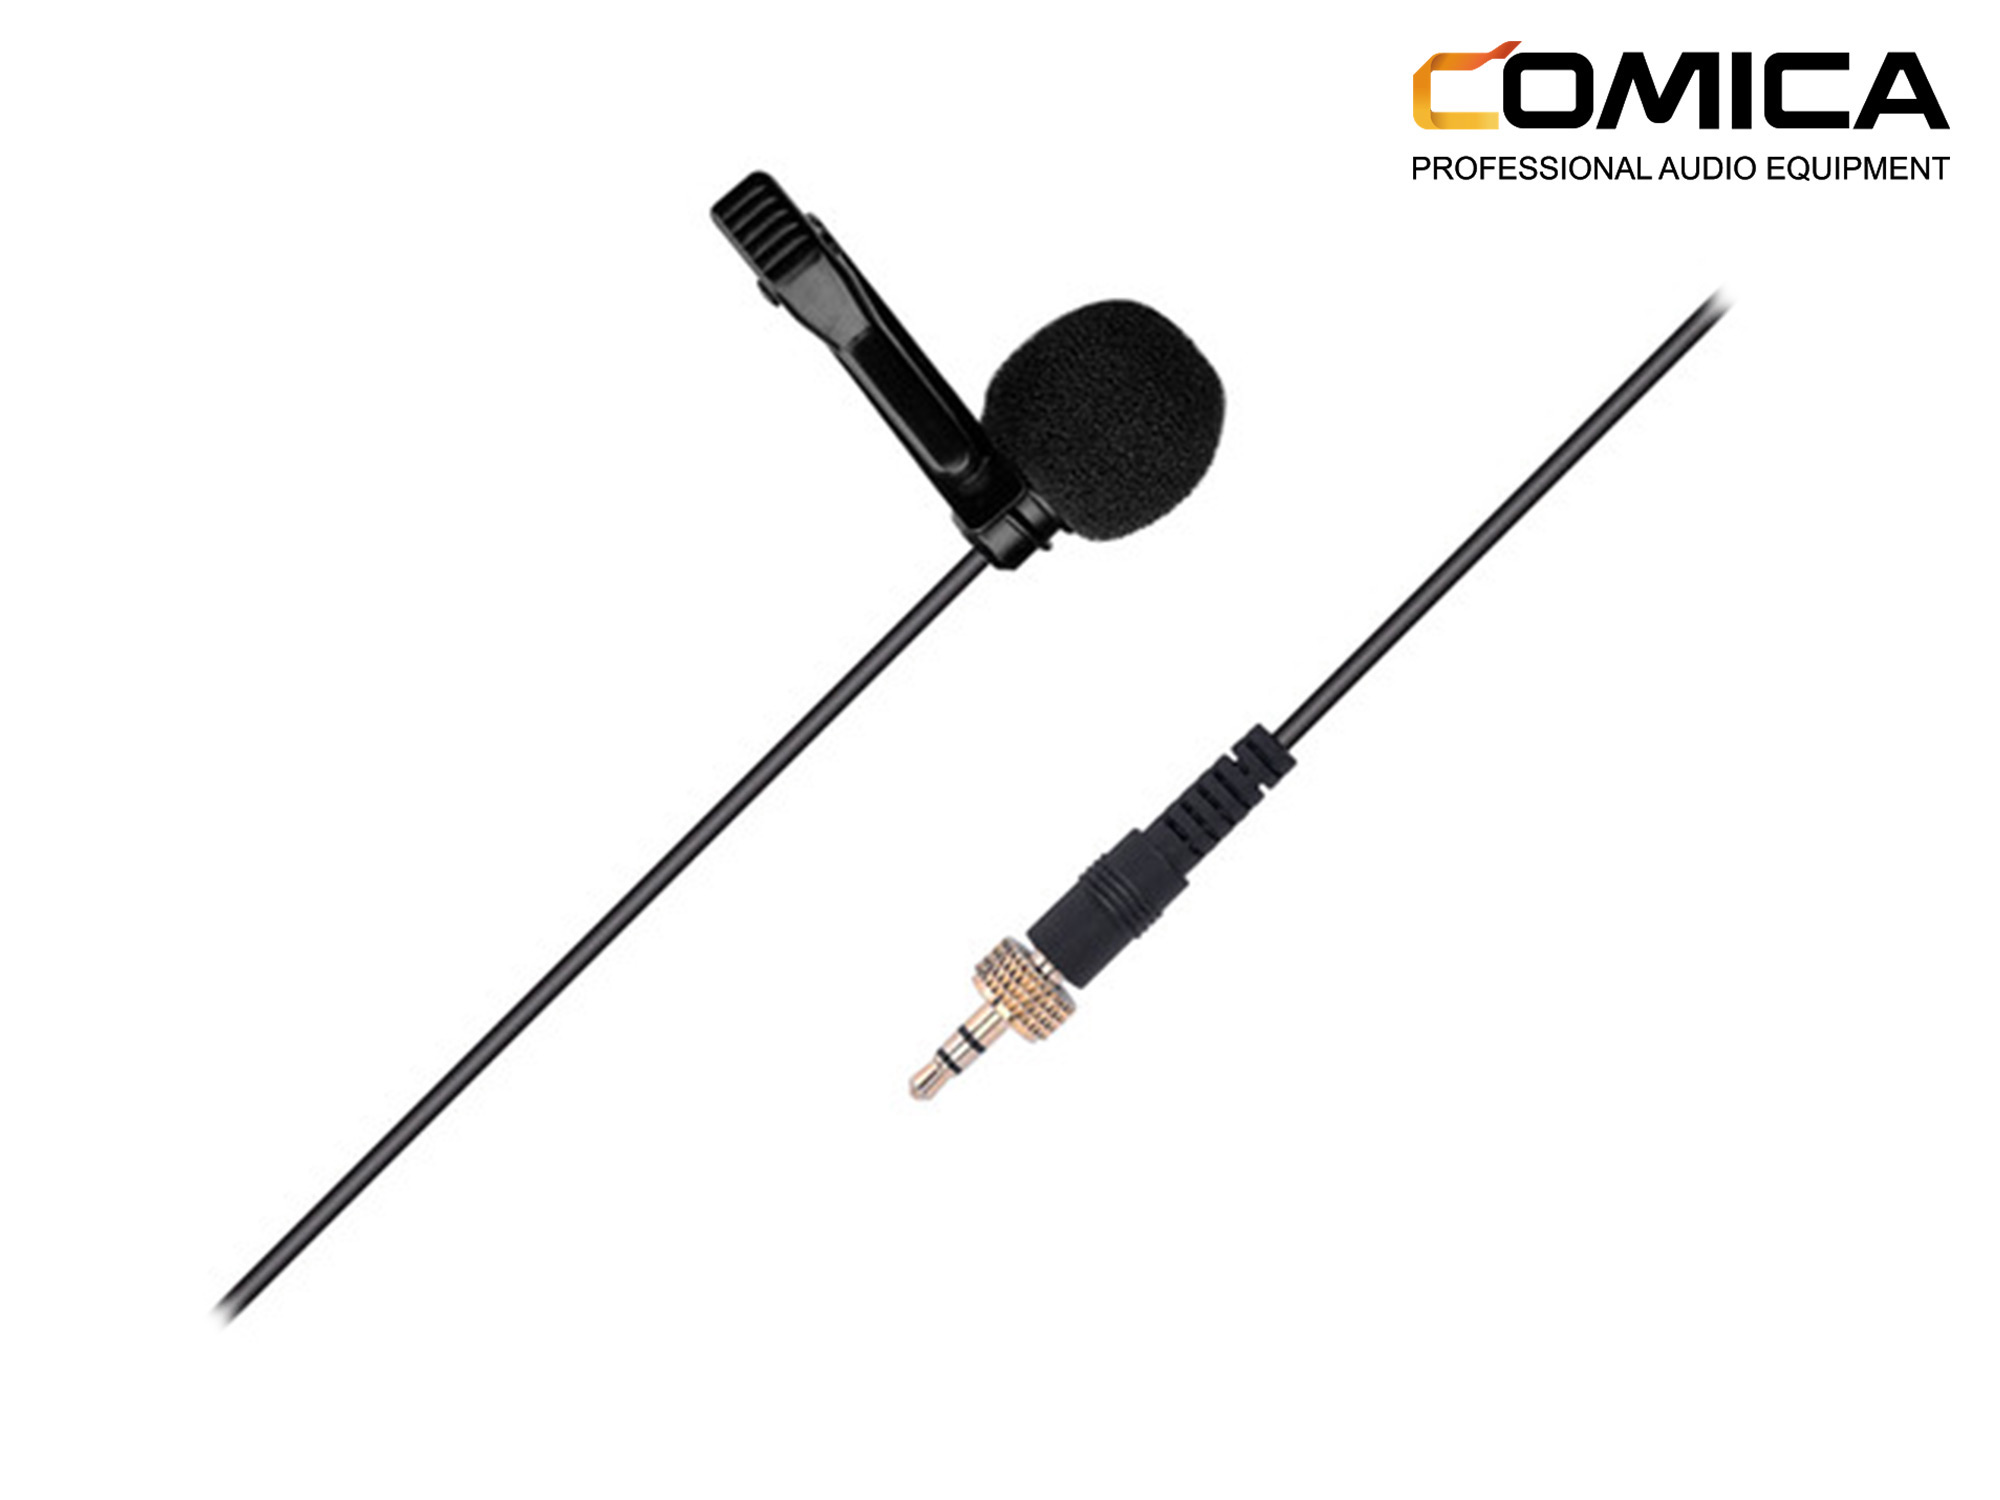 CVM-M-01 Lavalier Mic for Comica Wireless System